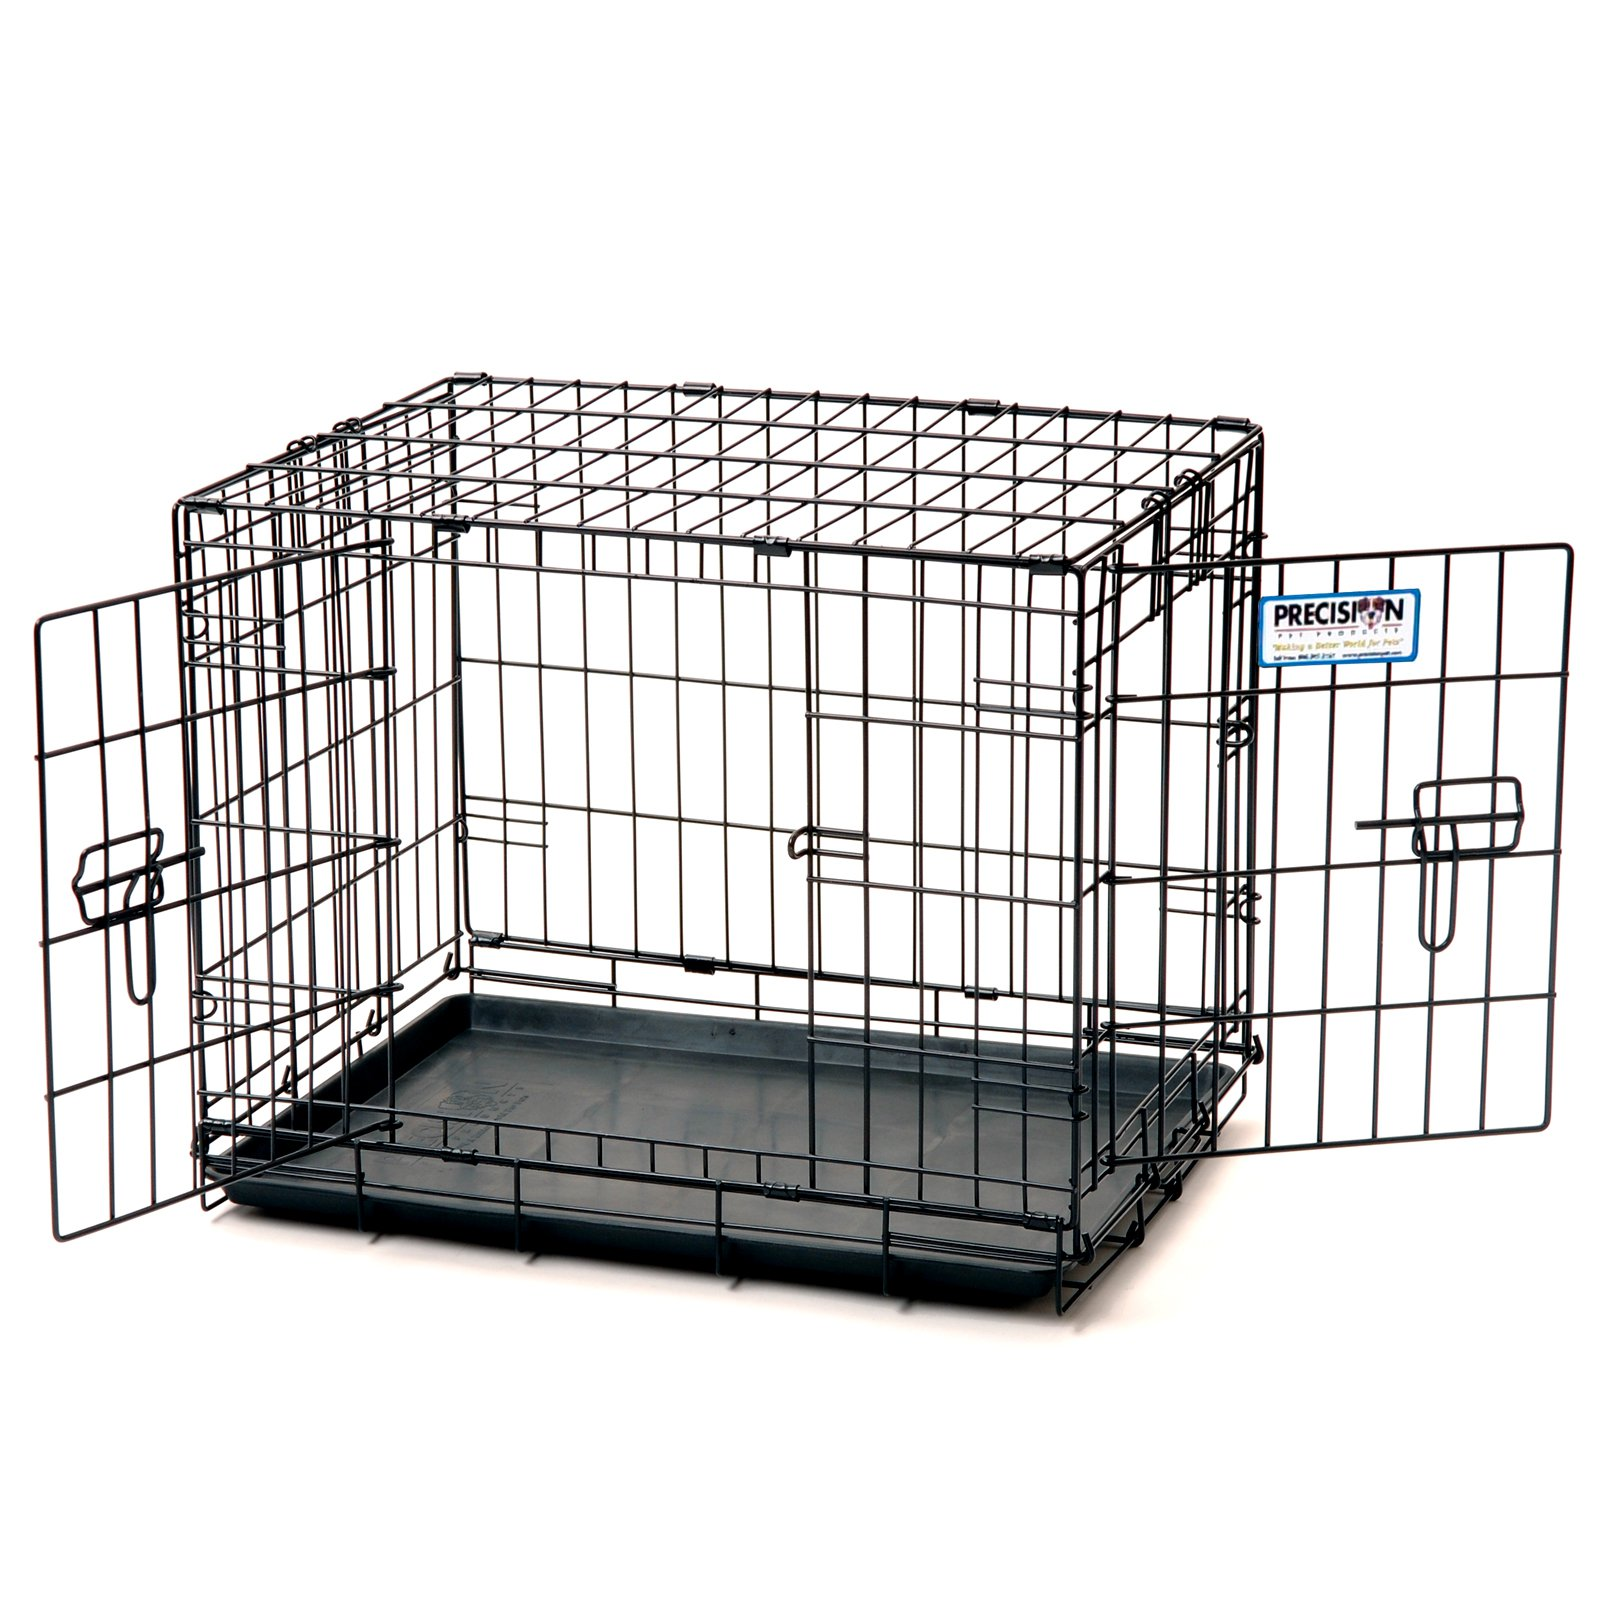 "Precision Pet Pro Valu Great Crate - Two Door 1000 - Pets up to 10 lbs - (19""L x 12""W x 14""H)"